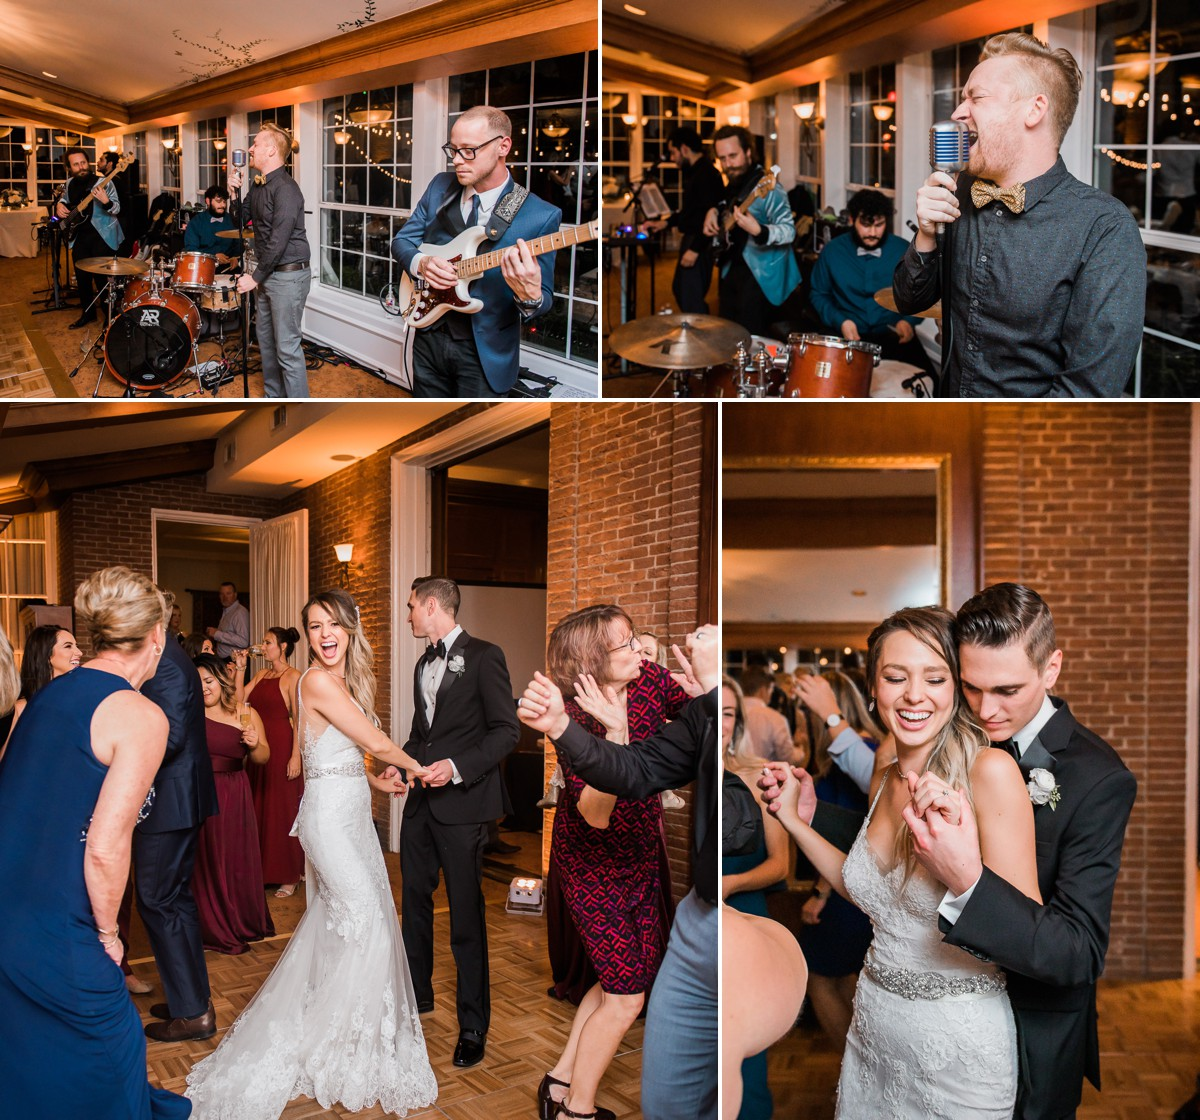 Houston Hotel Wedding Photo by Nate Messarra